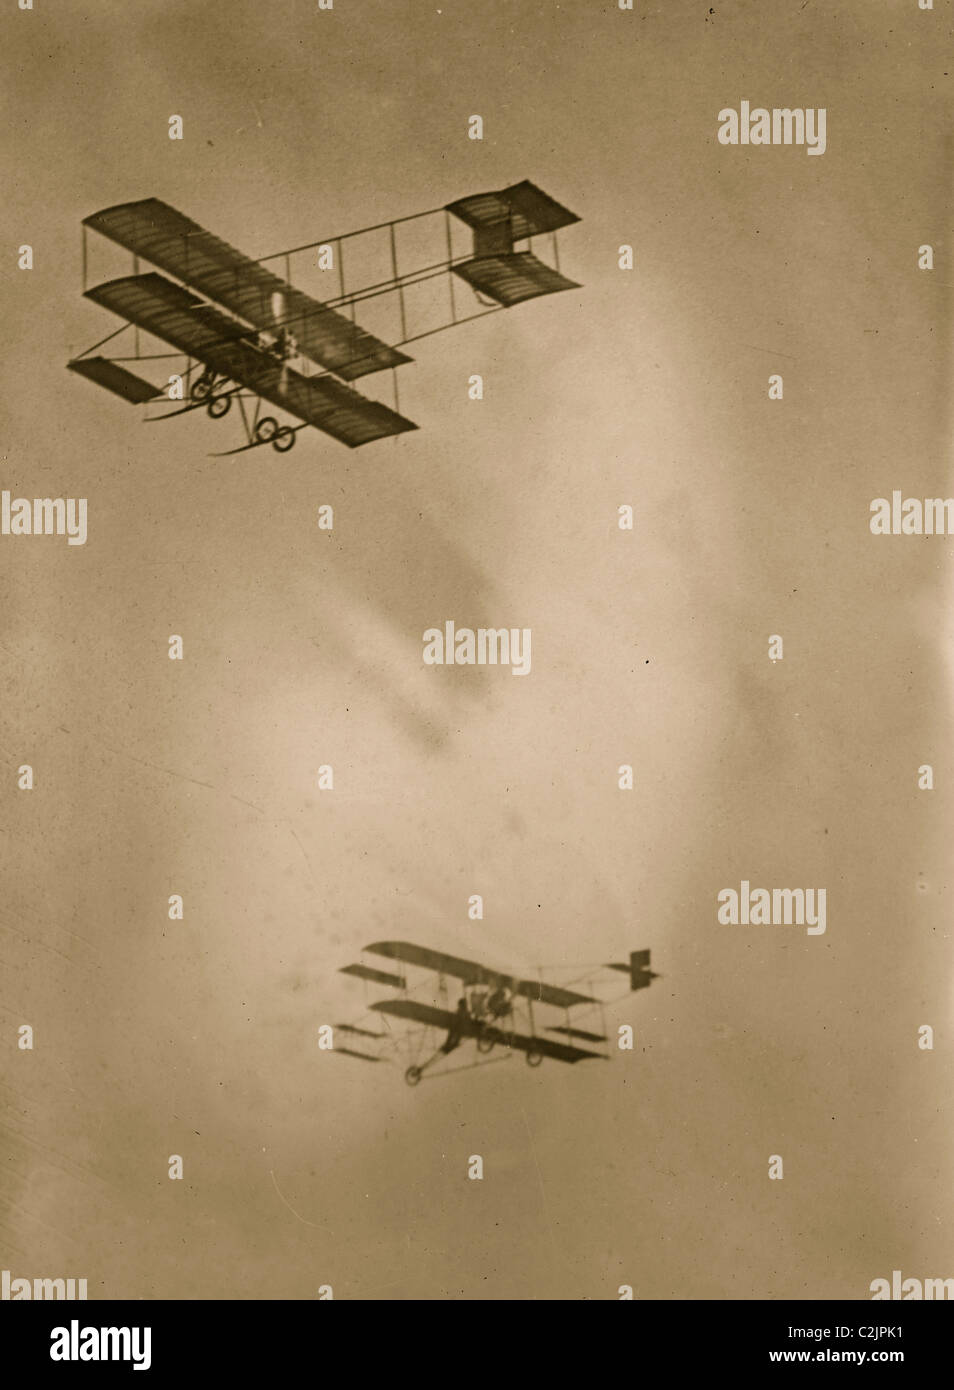 Paulhan and Hamilton aeroplanes in flight, Los Angeles - Stock Image